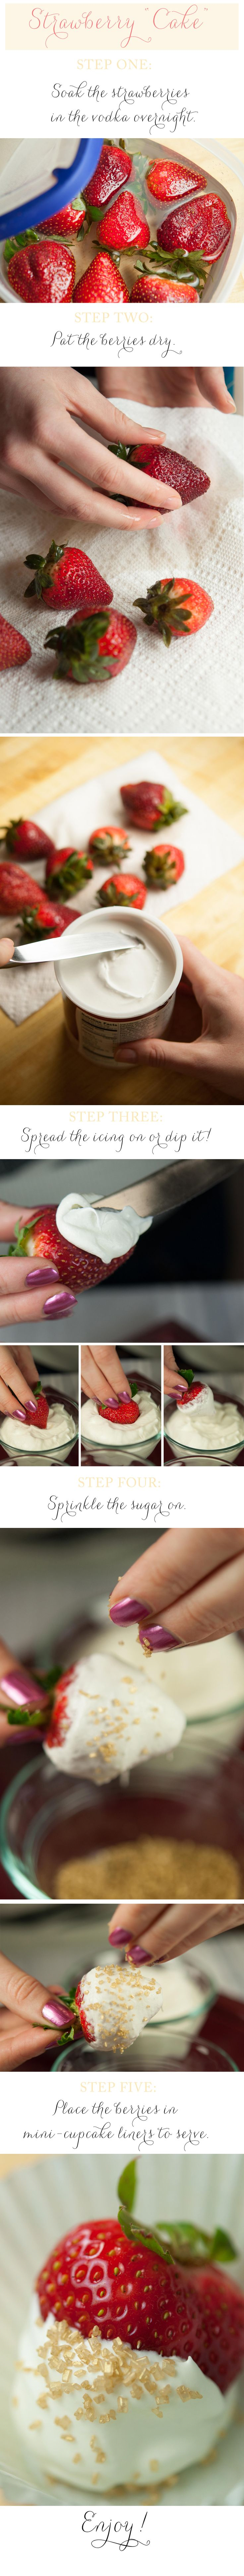 Cake Vodka-Infused Strawberries With Whipped Vanilla Icing on Fit for a Bride blog.    Bachelorette party food if I ever saw it!